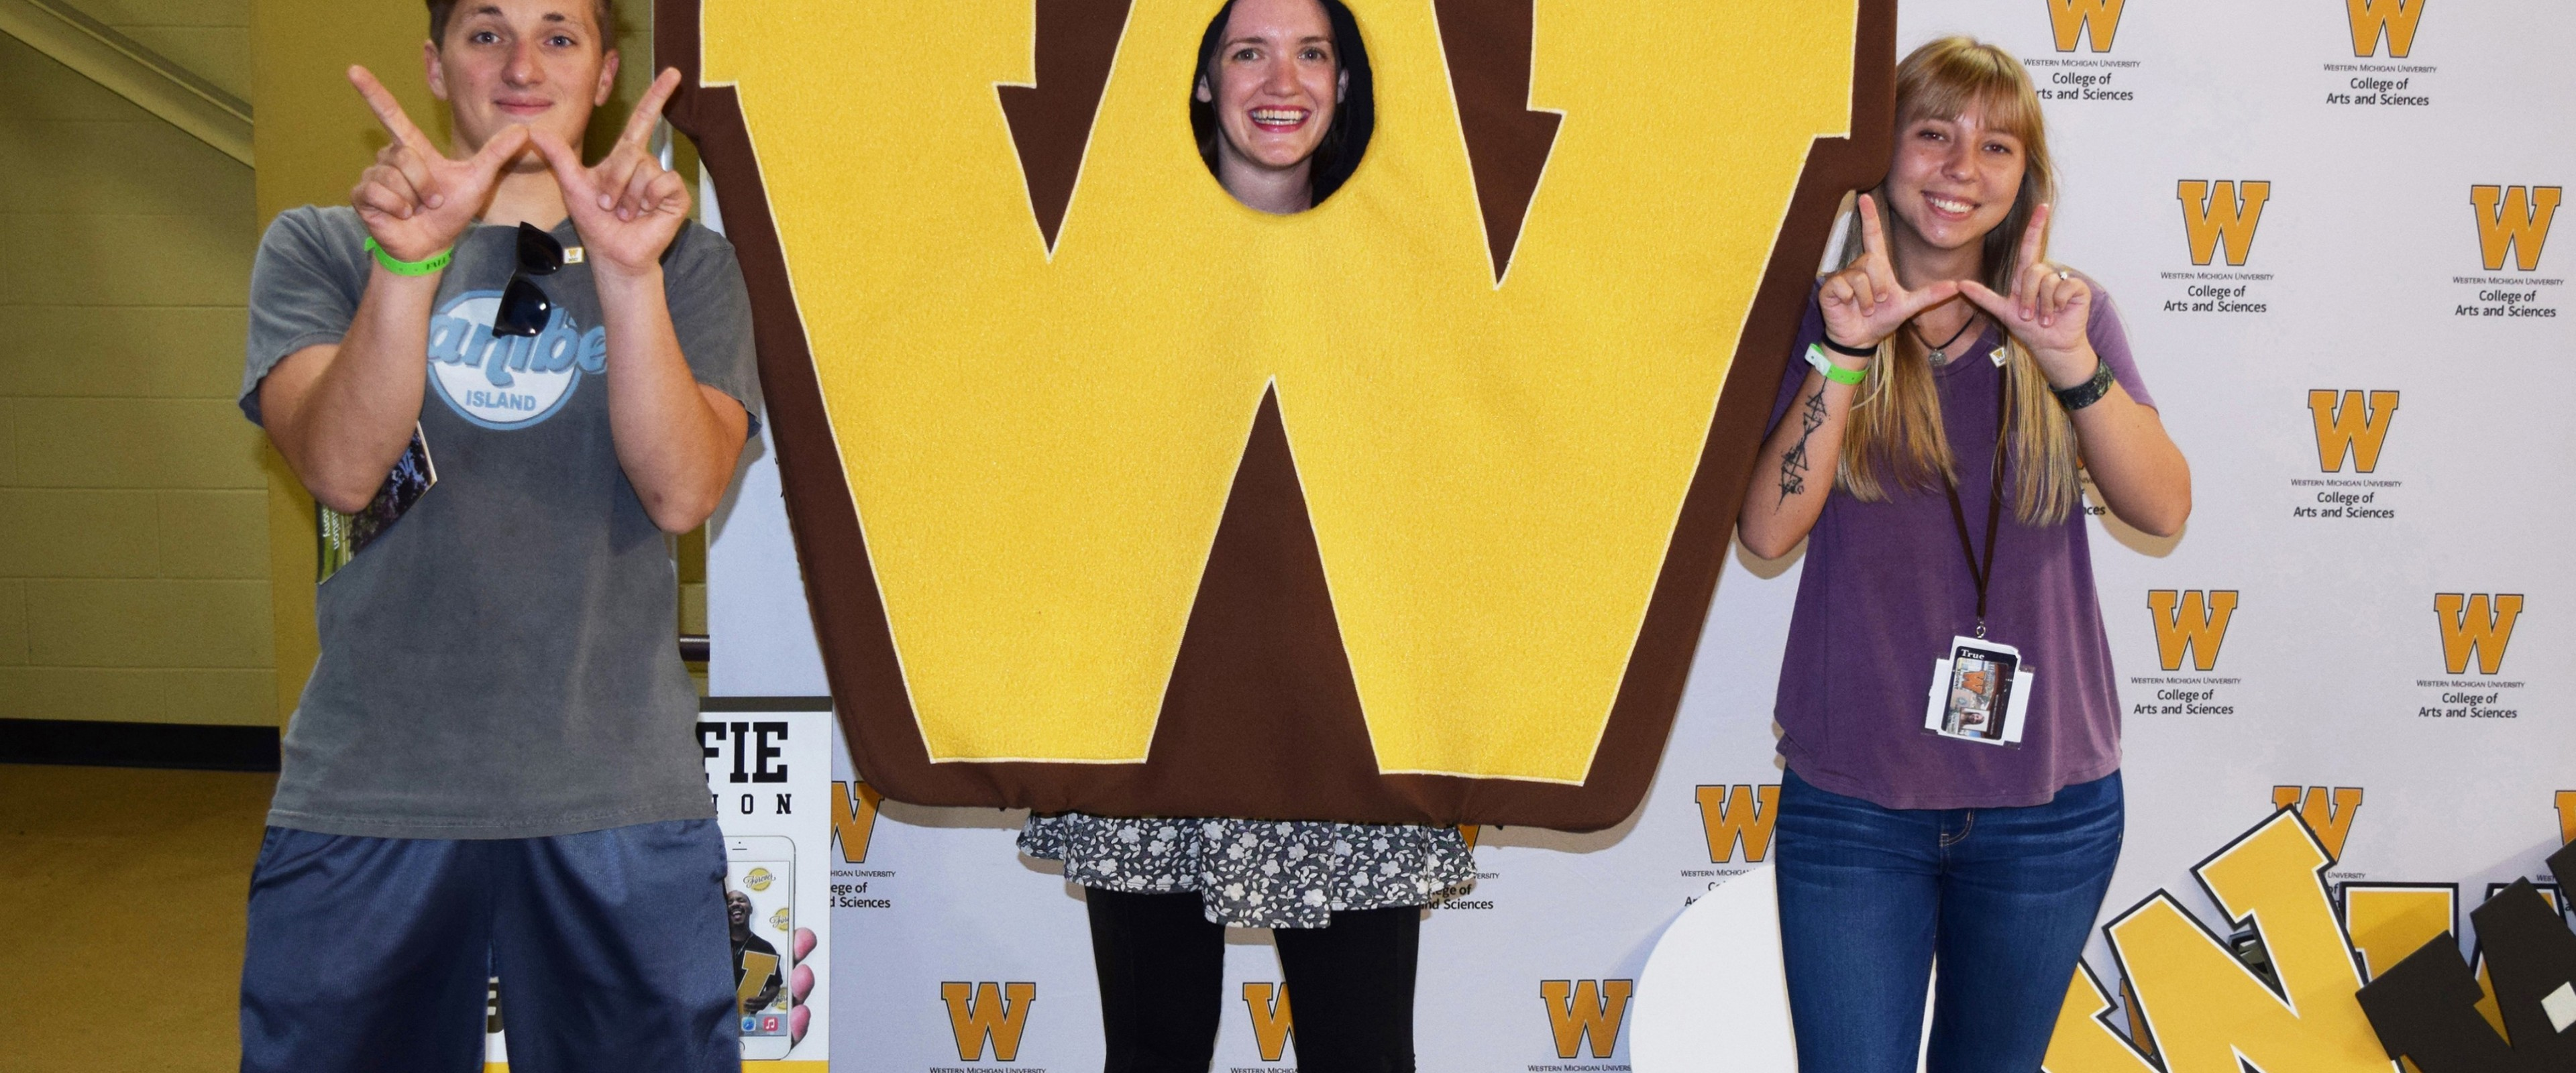 """Students use their fingers to make a """"W"""" symbol at a photoshoot at Fall Welcome"""